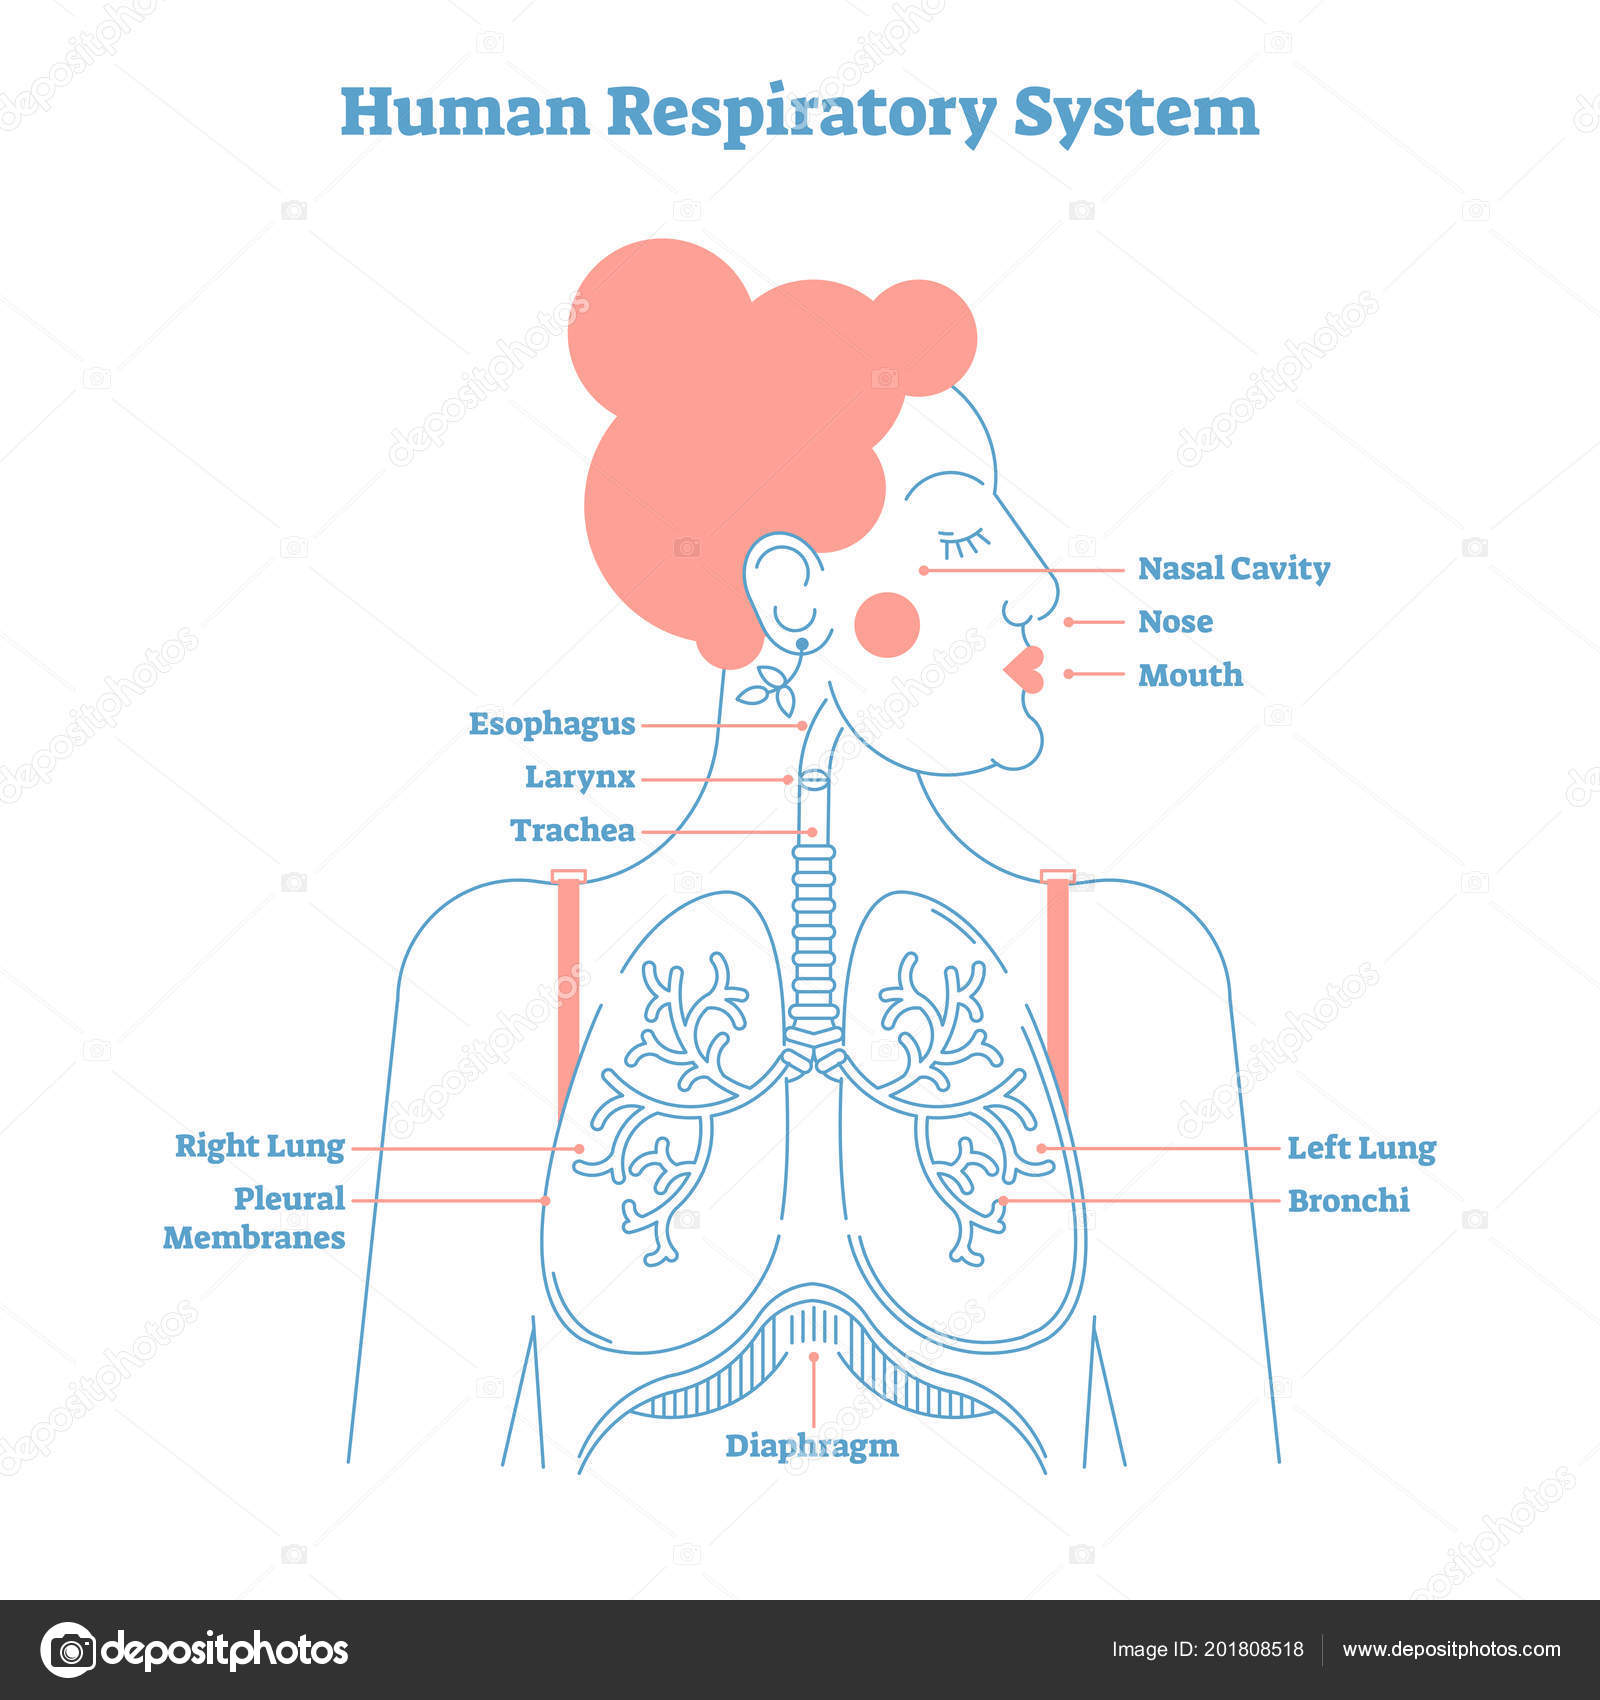 hight resolution of human respiratory system anatomical line style artistic vector illustration medical education cross section diagram with esophagus larynx trachea